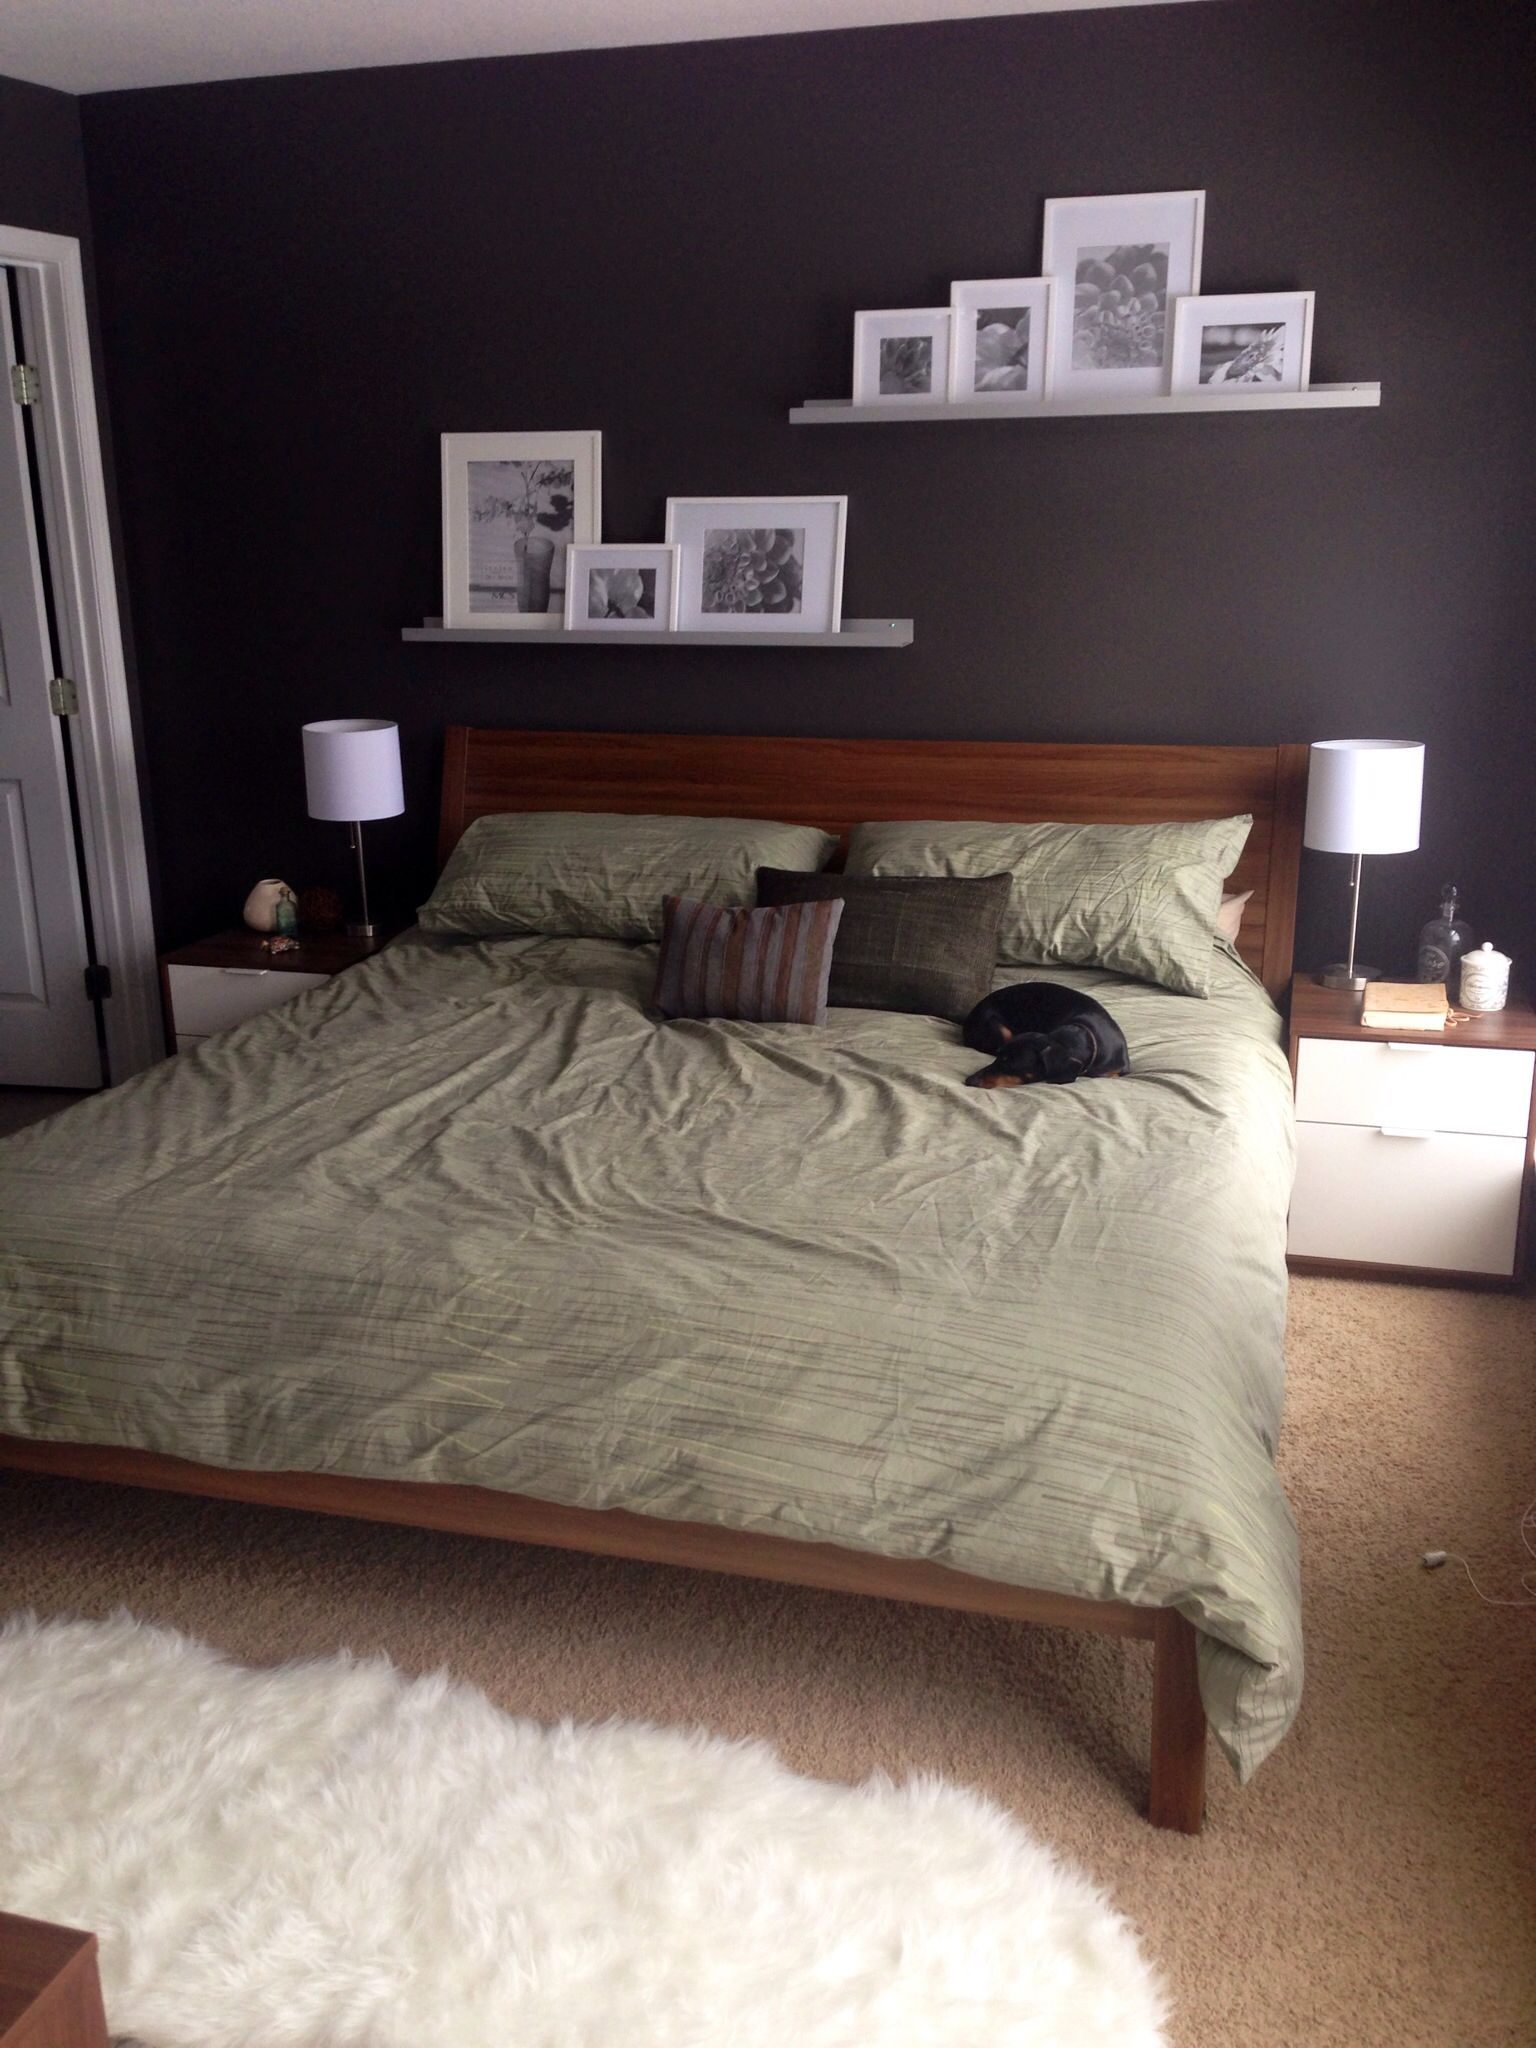 calvin klein bedding ikea nyvoll with gray walls wall shelves